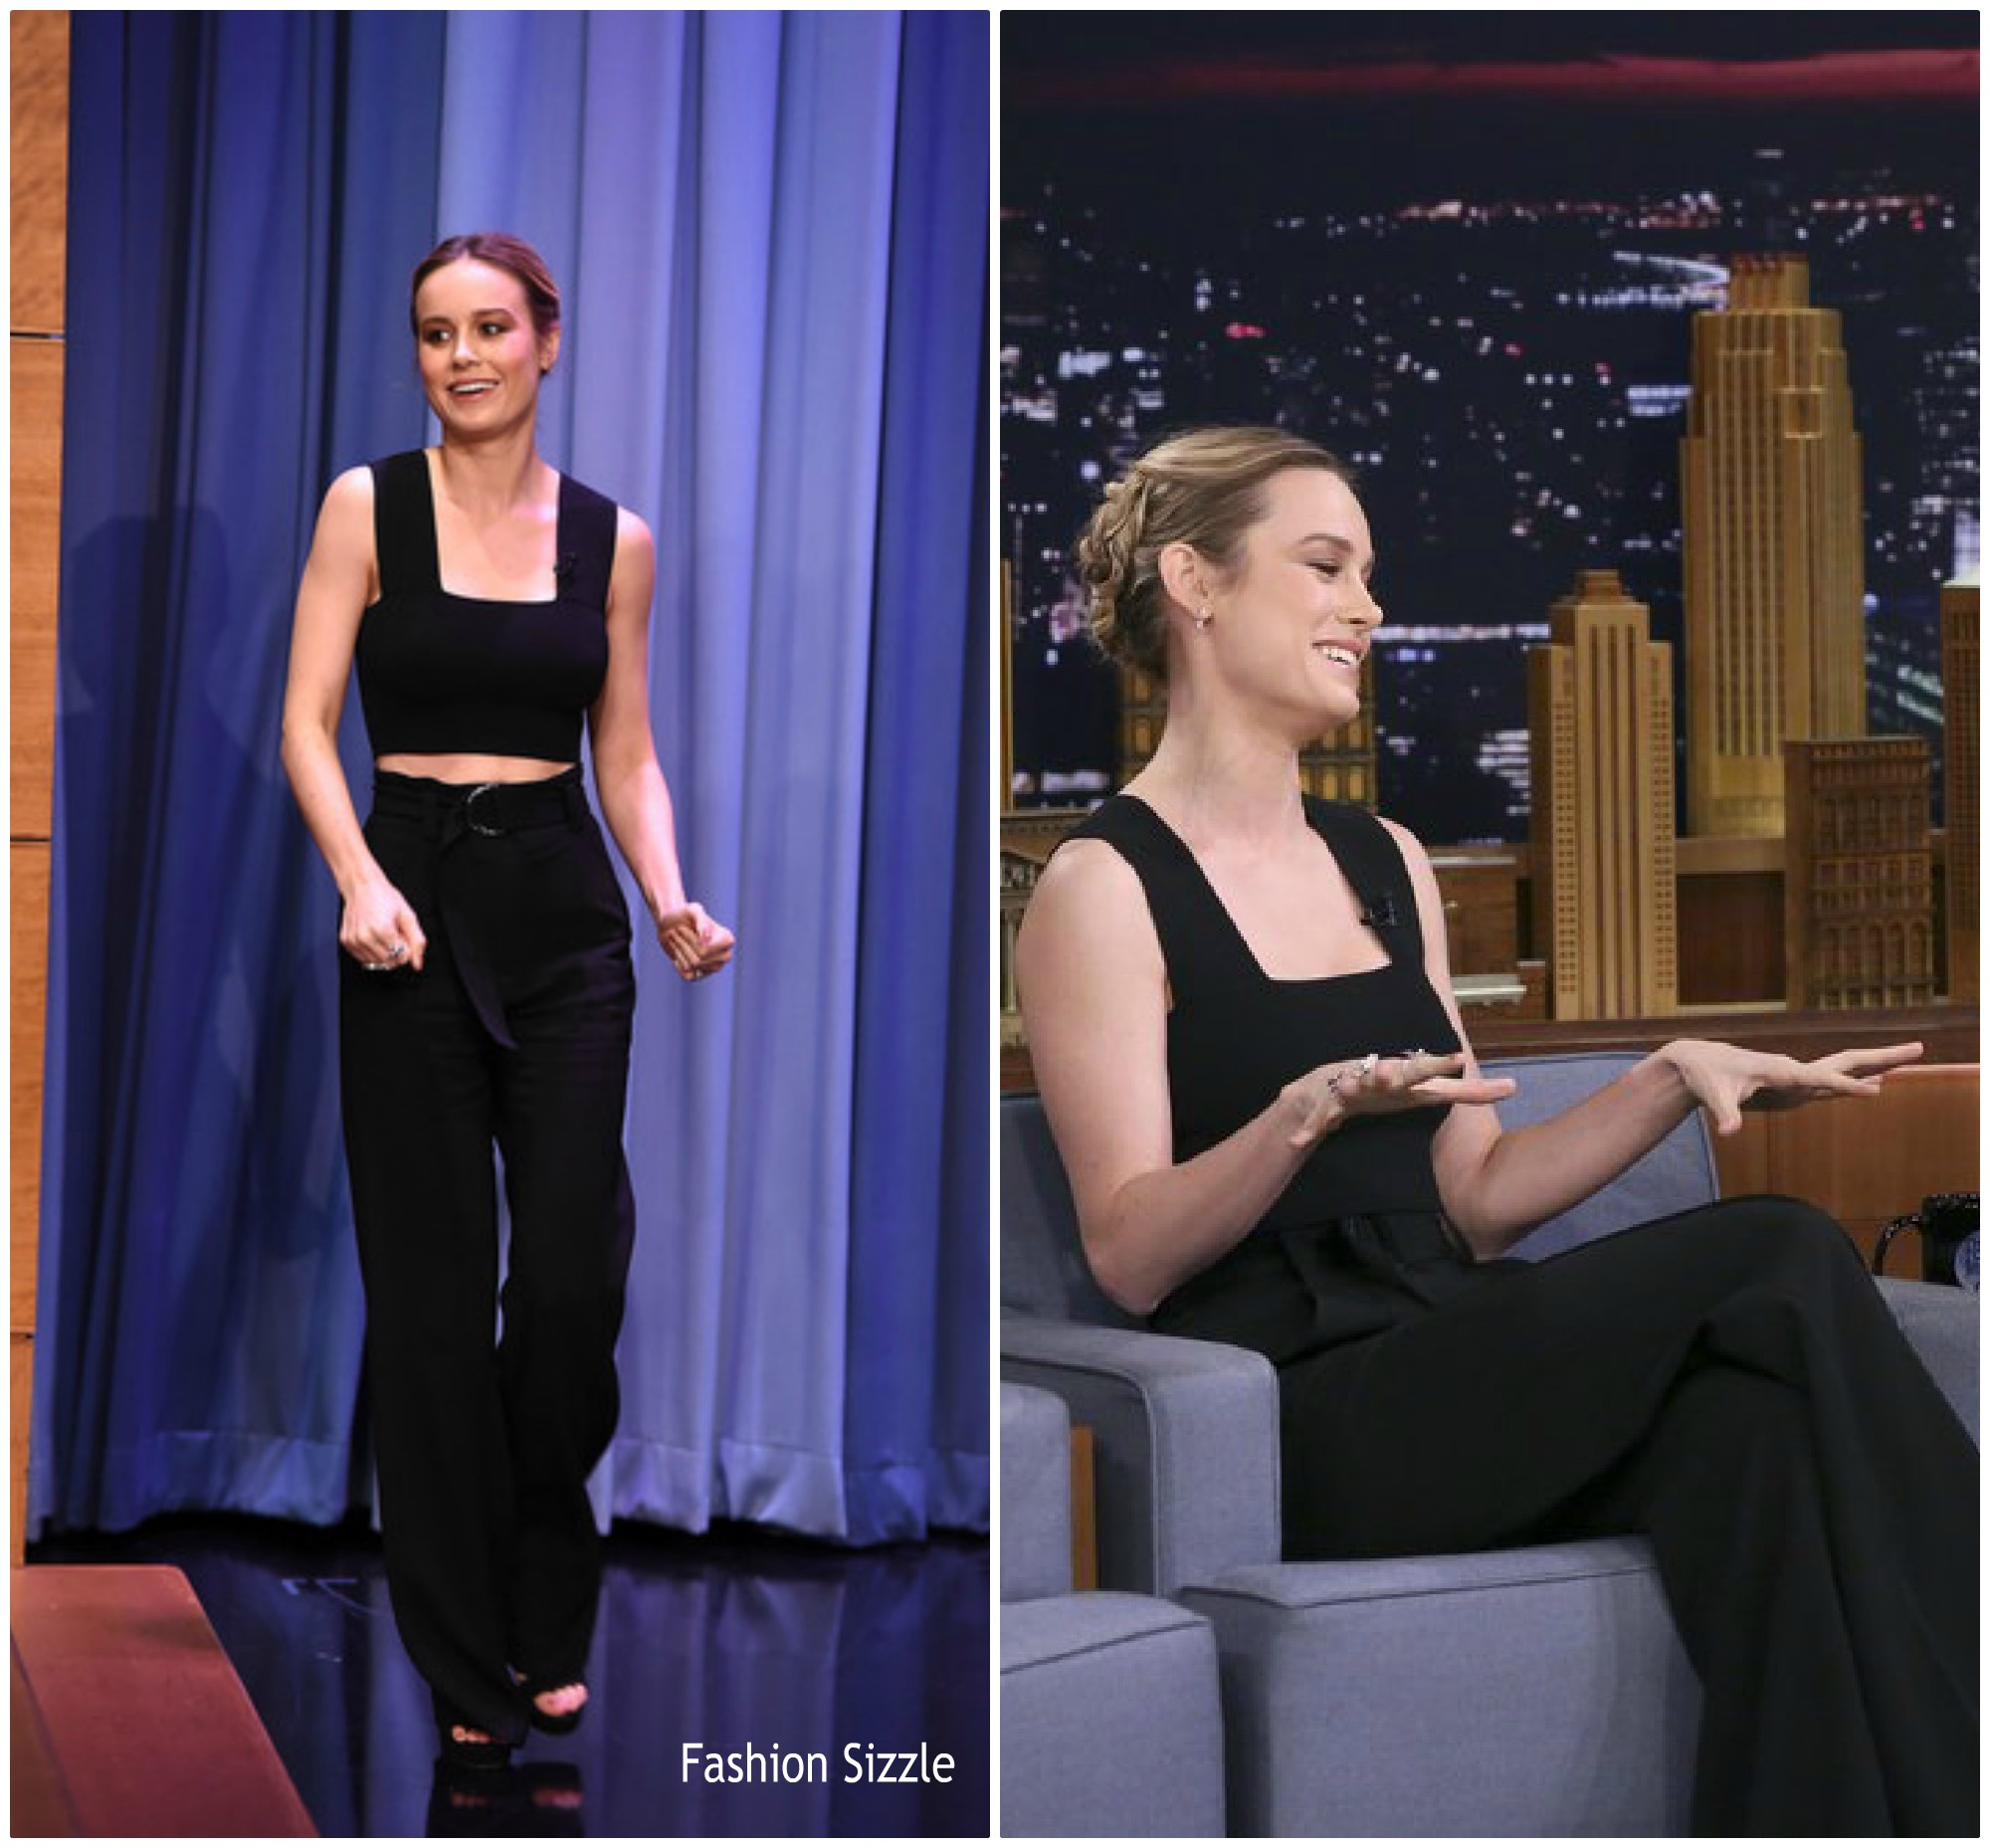 brie-larson-in-a-l-c-tonight-show-starring-jimmy-fallon